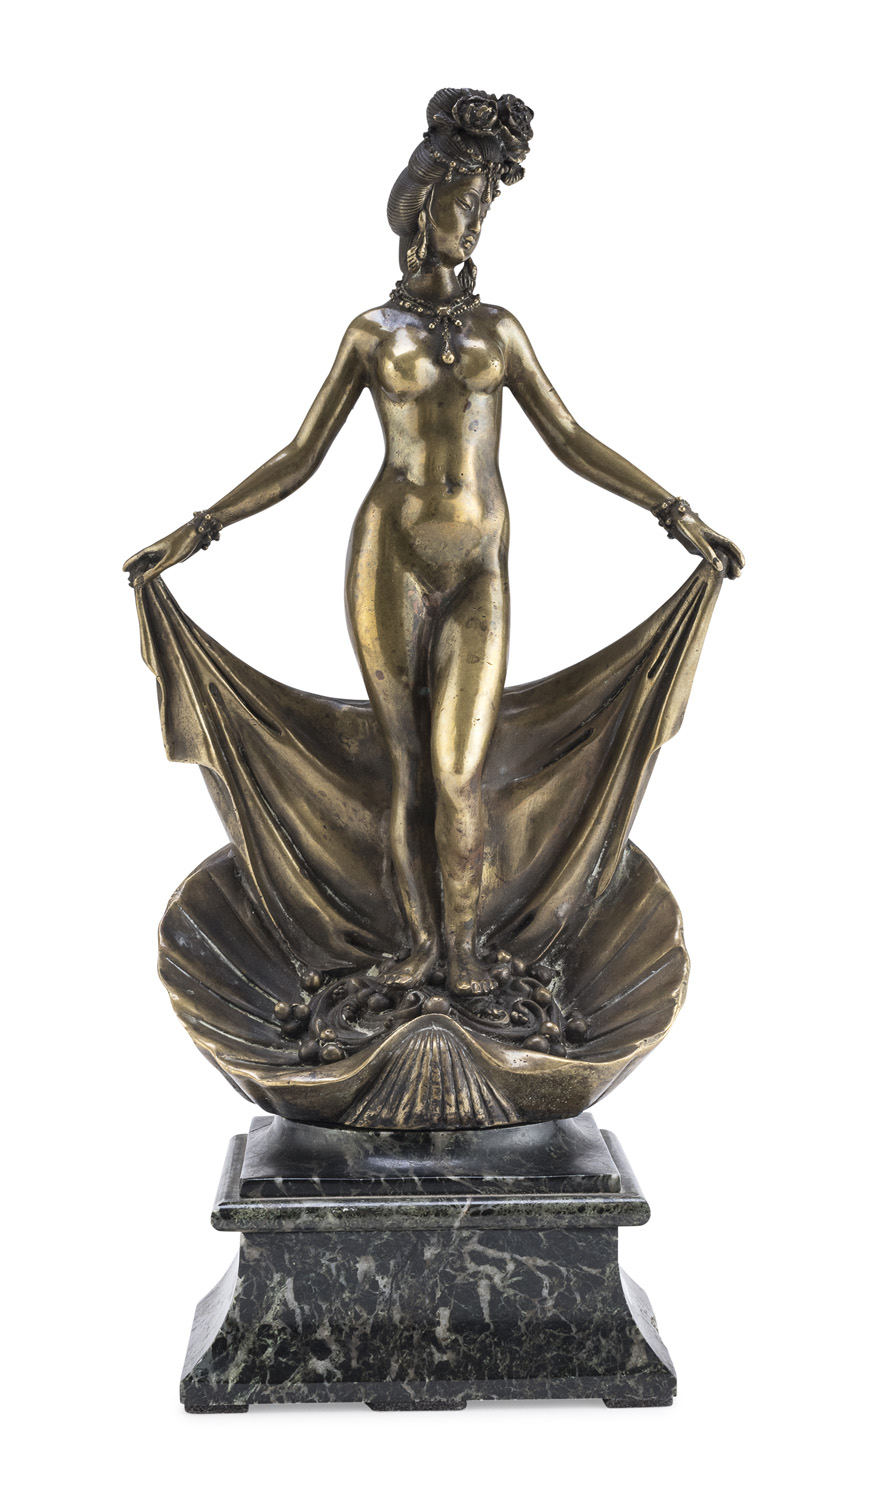 GILDED BRONZE SCULPTURE EARLY 20TH CENTURY